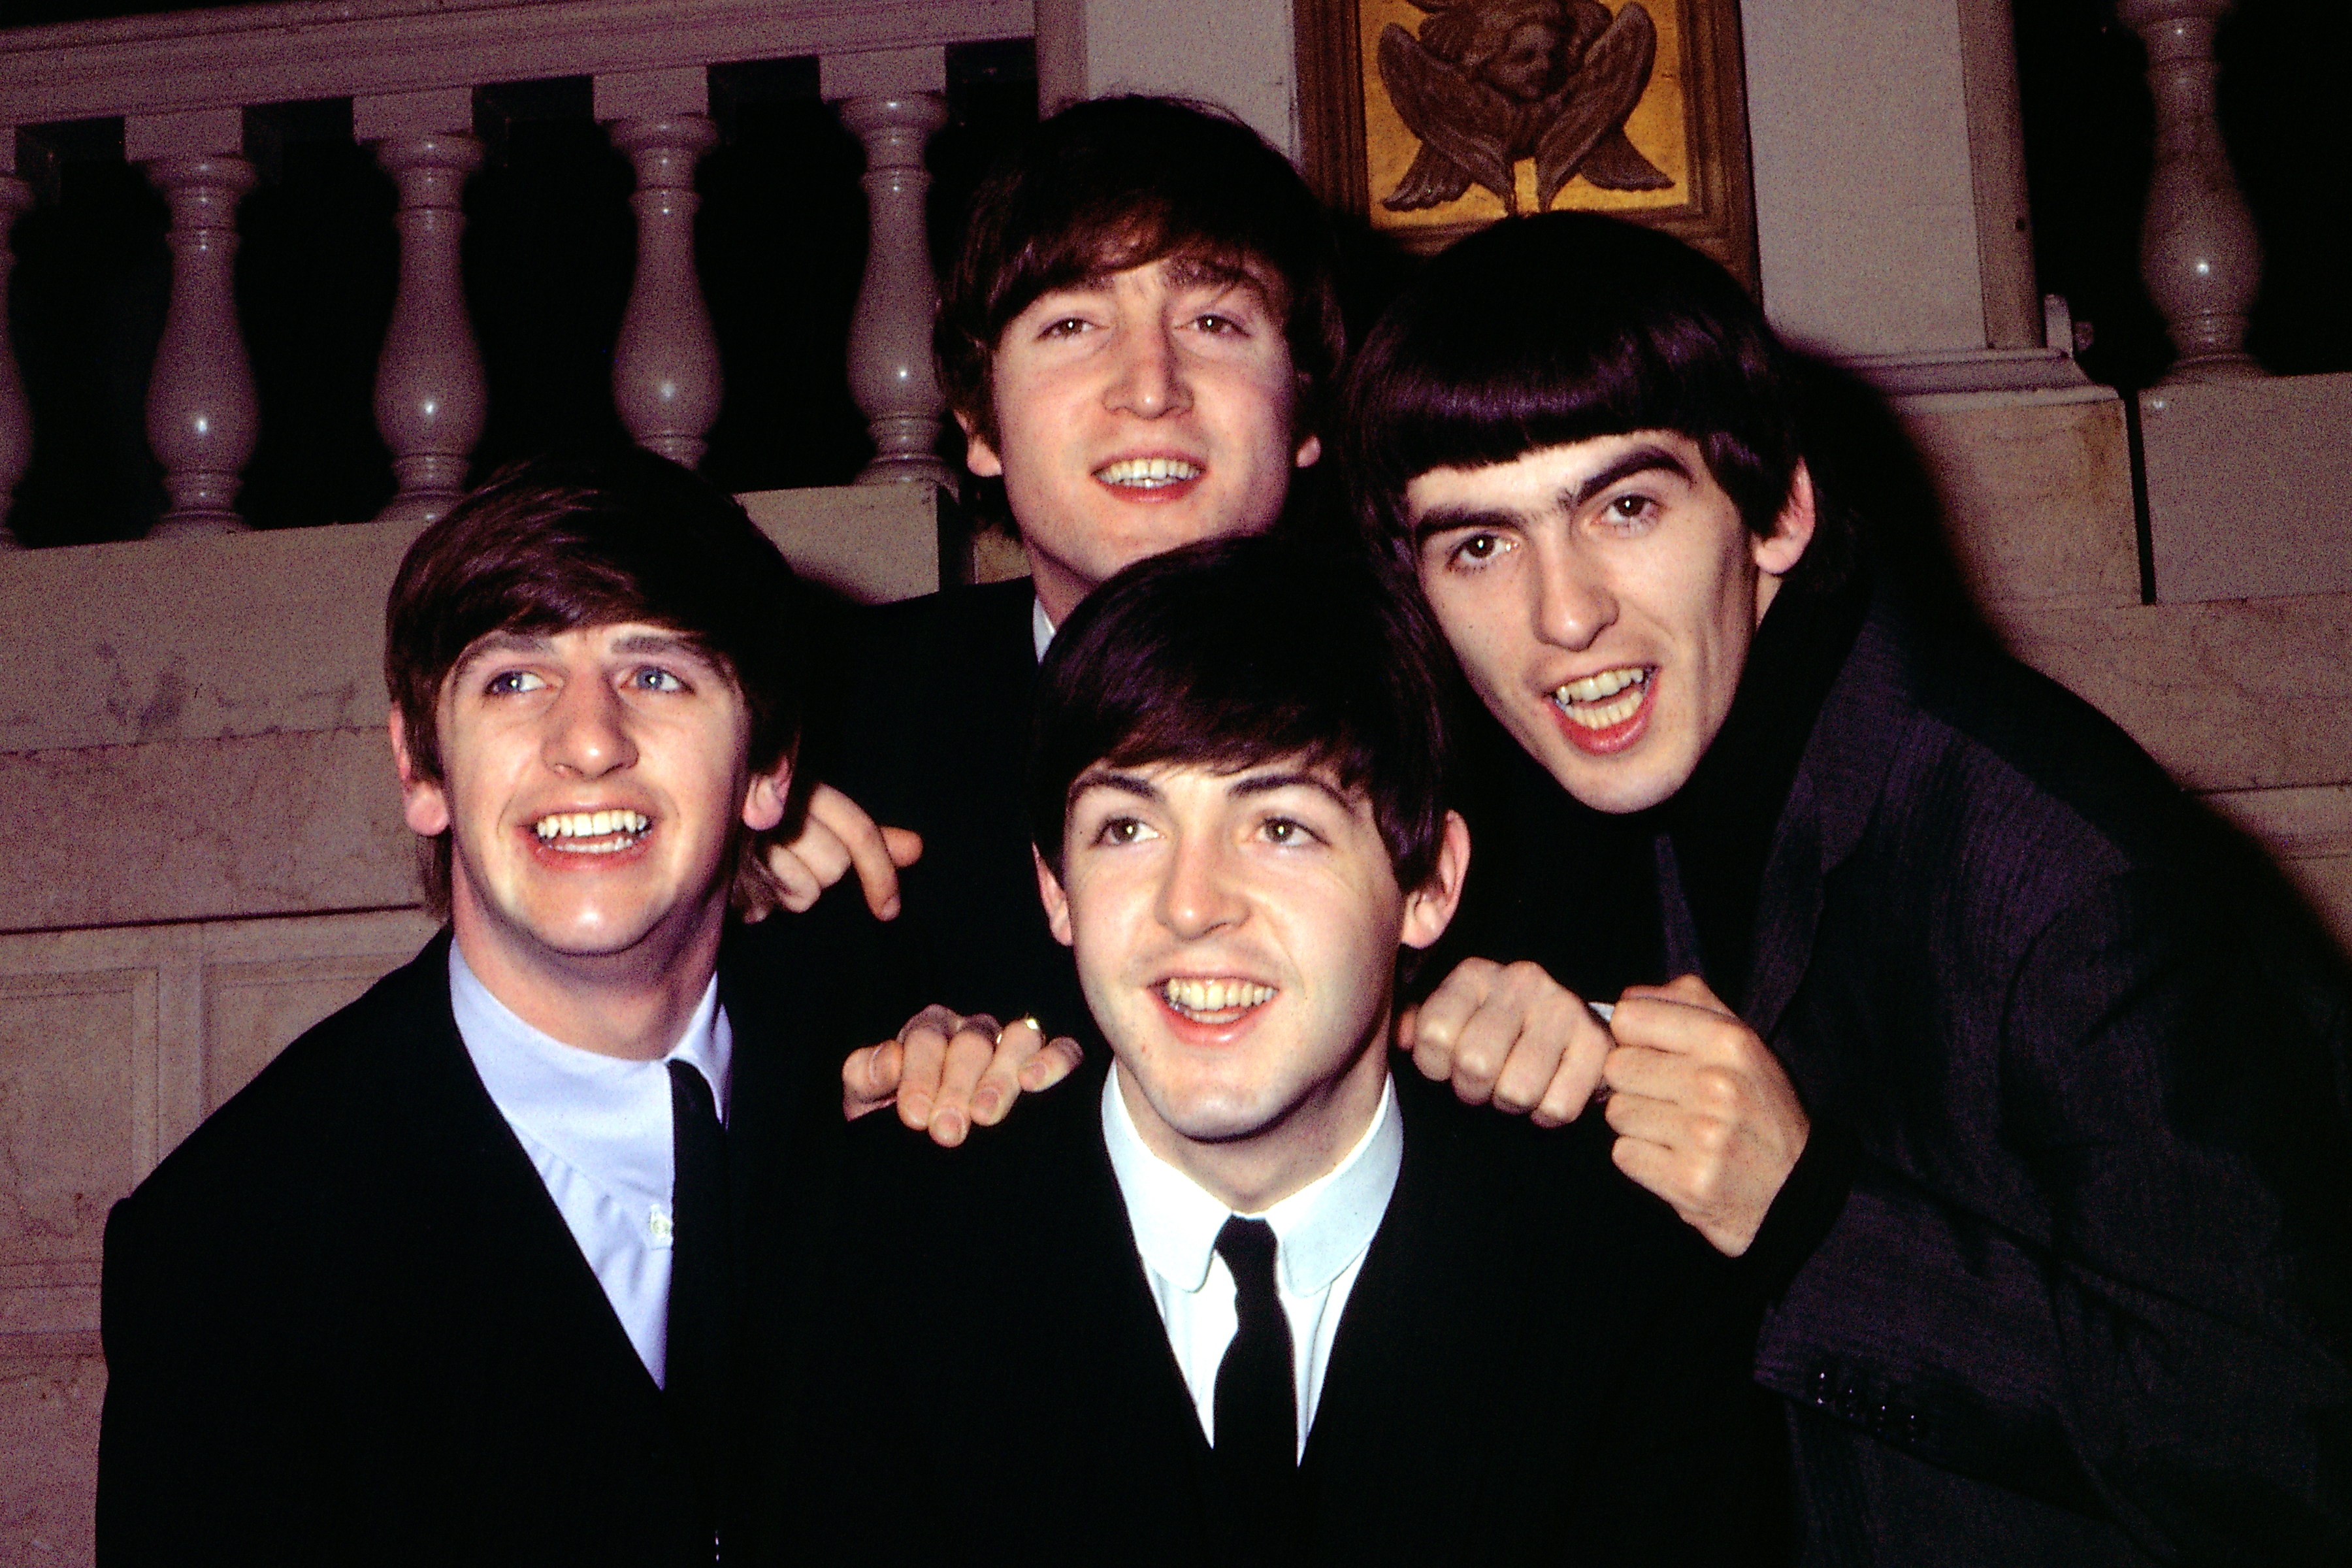 (L-R) Ringo Starr, John Lennon, Paul McCartney and George Harrison of The Beatles pose for a portrait in circa 1964.